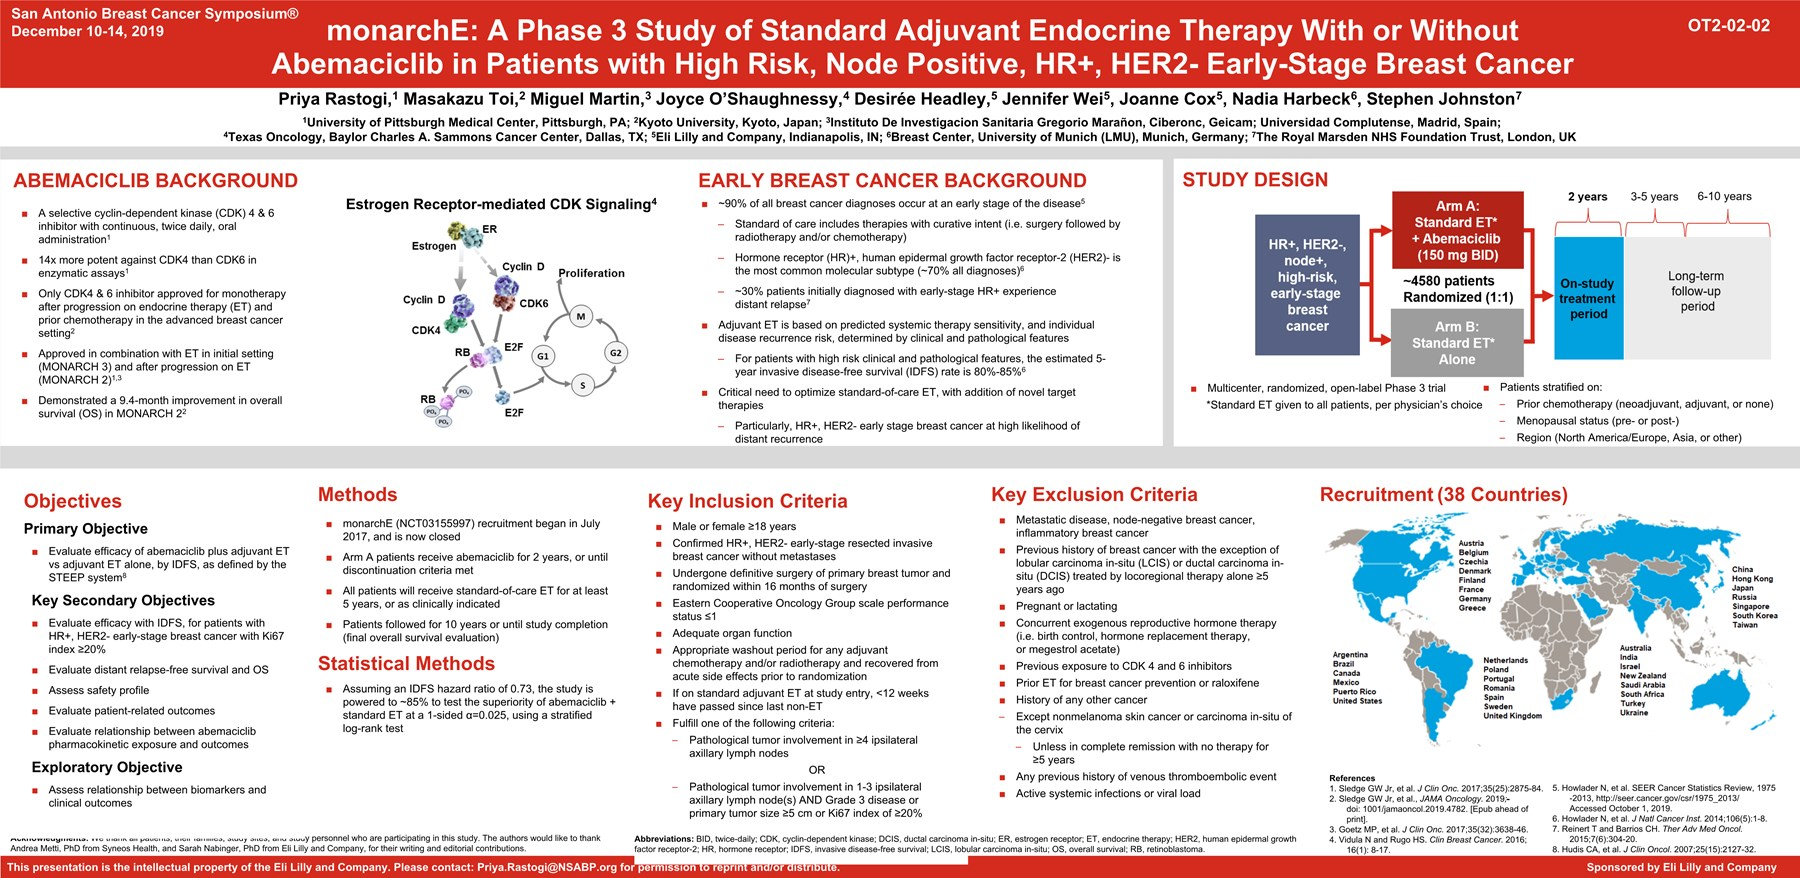 Monarch E: a phase 3 study of standard adjuvant endocrine therapy with or without abemaciclib in patients with high risk, node positive, hormone-receptor positive, human epidermal growth factor receptor 2-negative early-stage breast cancer